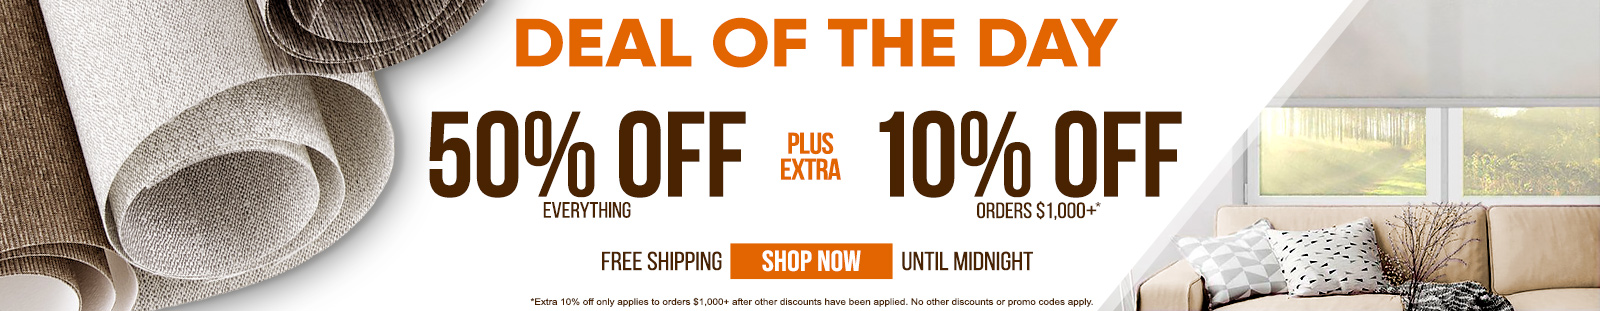 50% off everything plus extra 10% off orders $1,000+